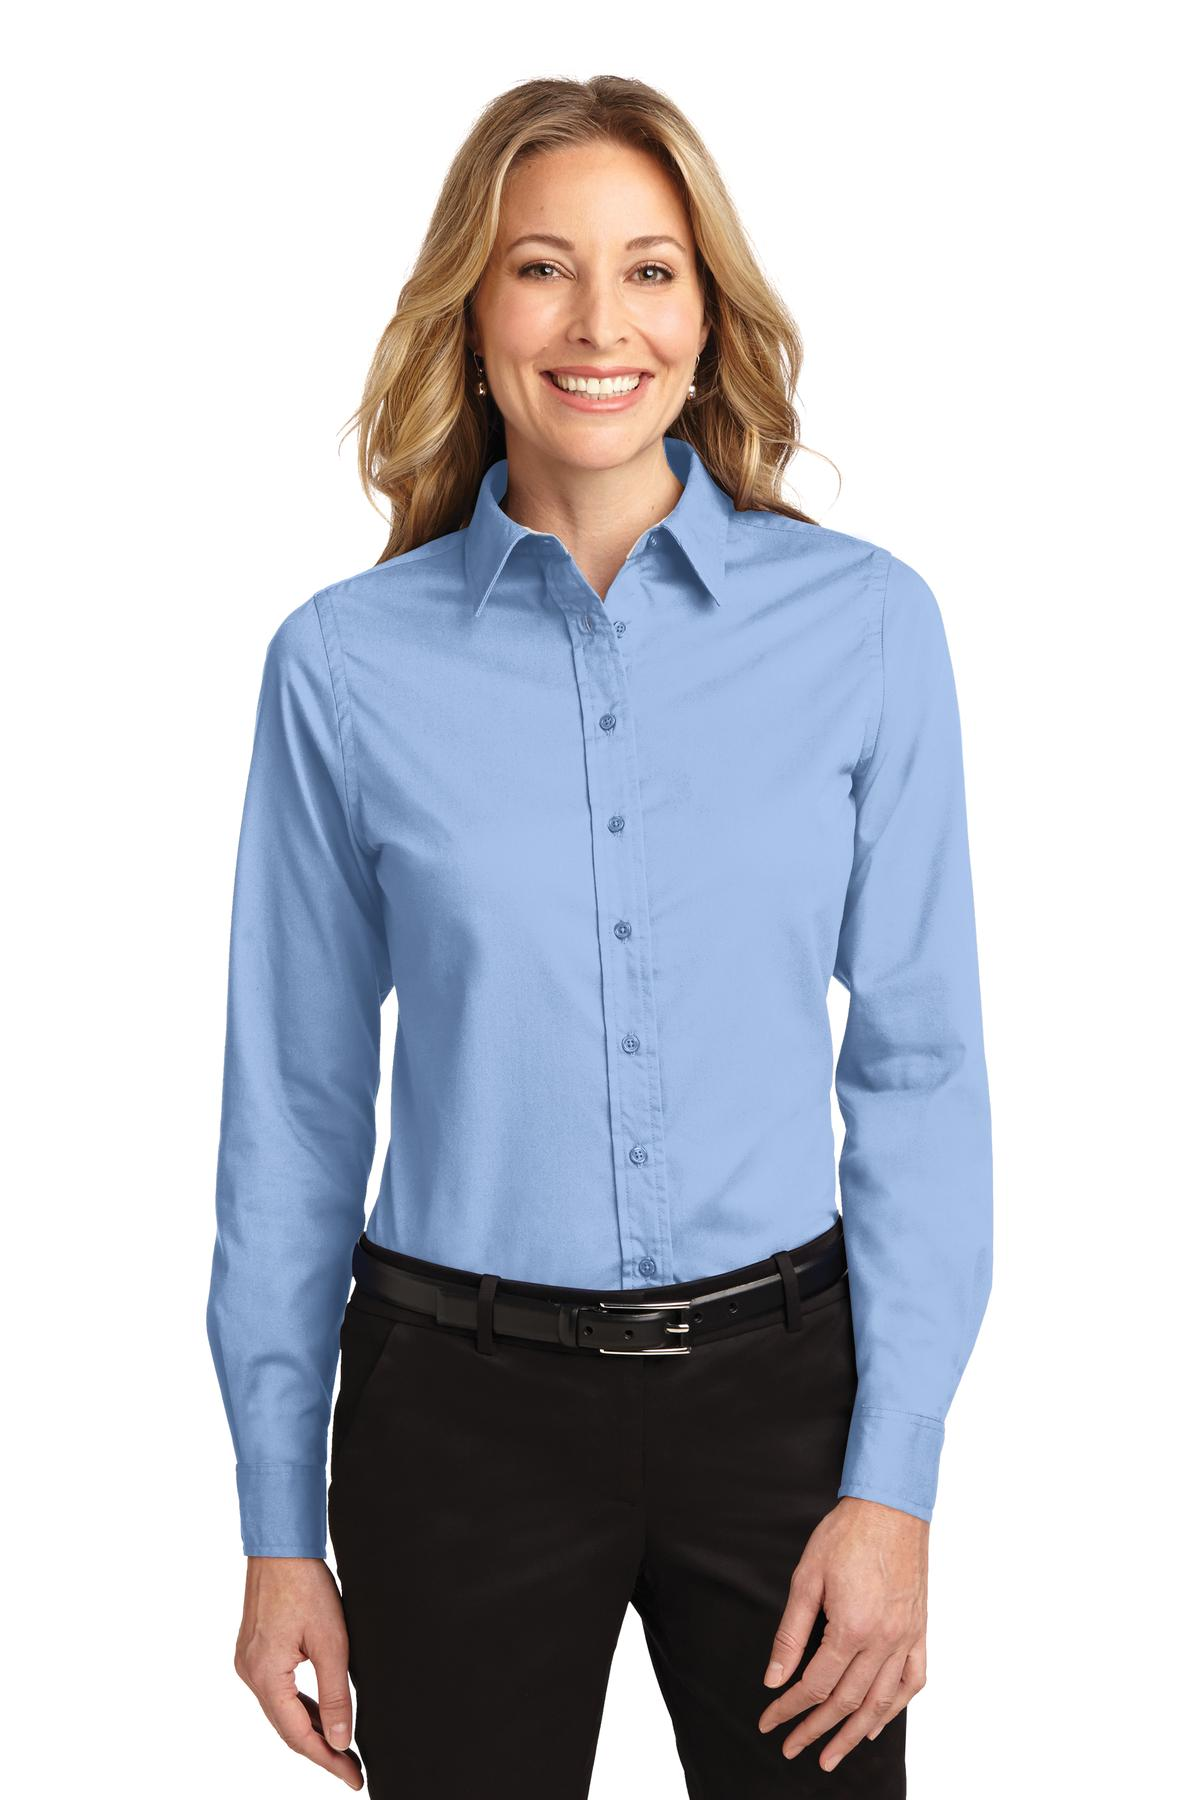 Port Authority ®  Ladies Long Sleeve Easy Care Shirt.  L608 - Light Blue/ Light Stone